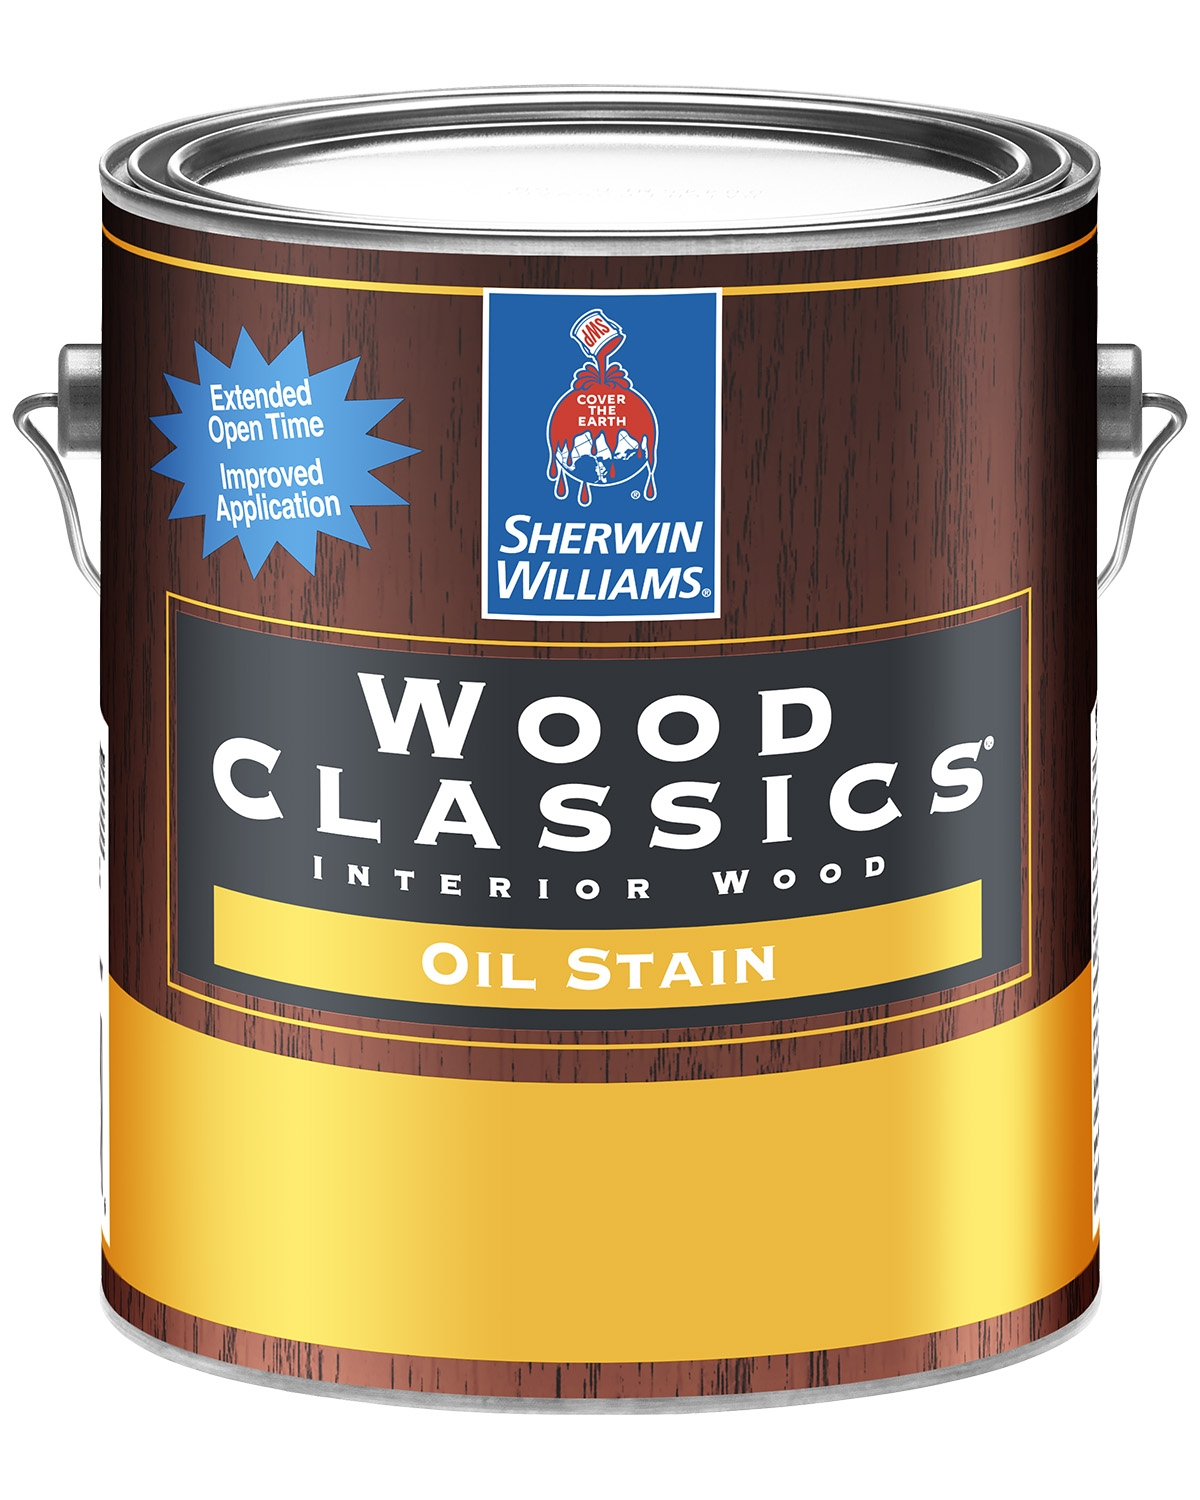 Best Paint For Kitchen Cabinets Oil Or Latex: Sherwin Williams Oil Based Paint For Wood